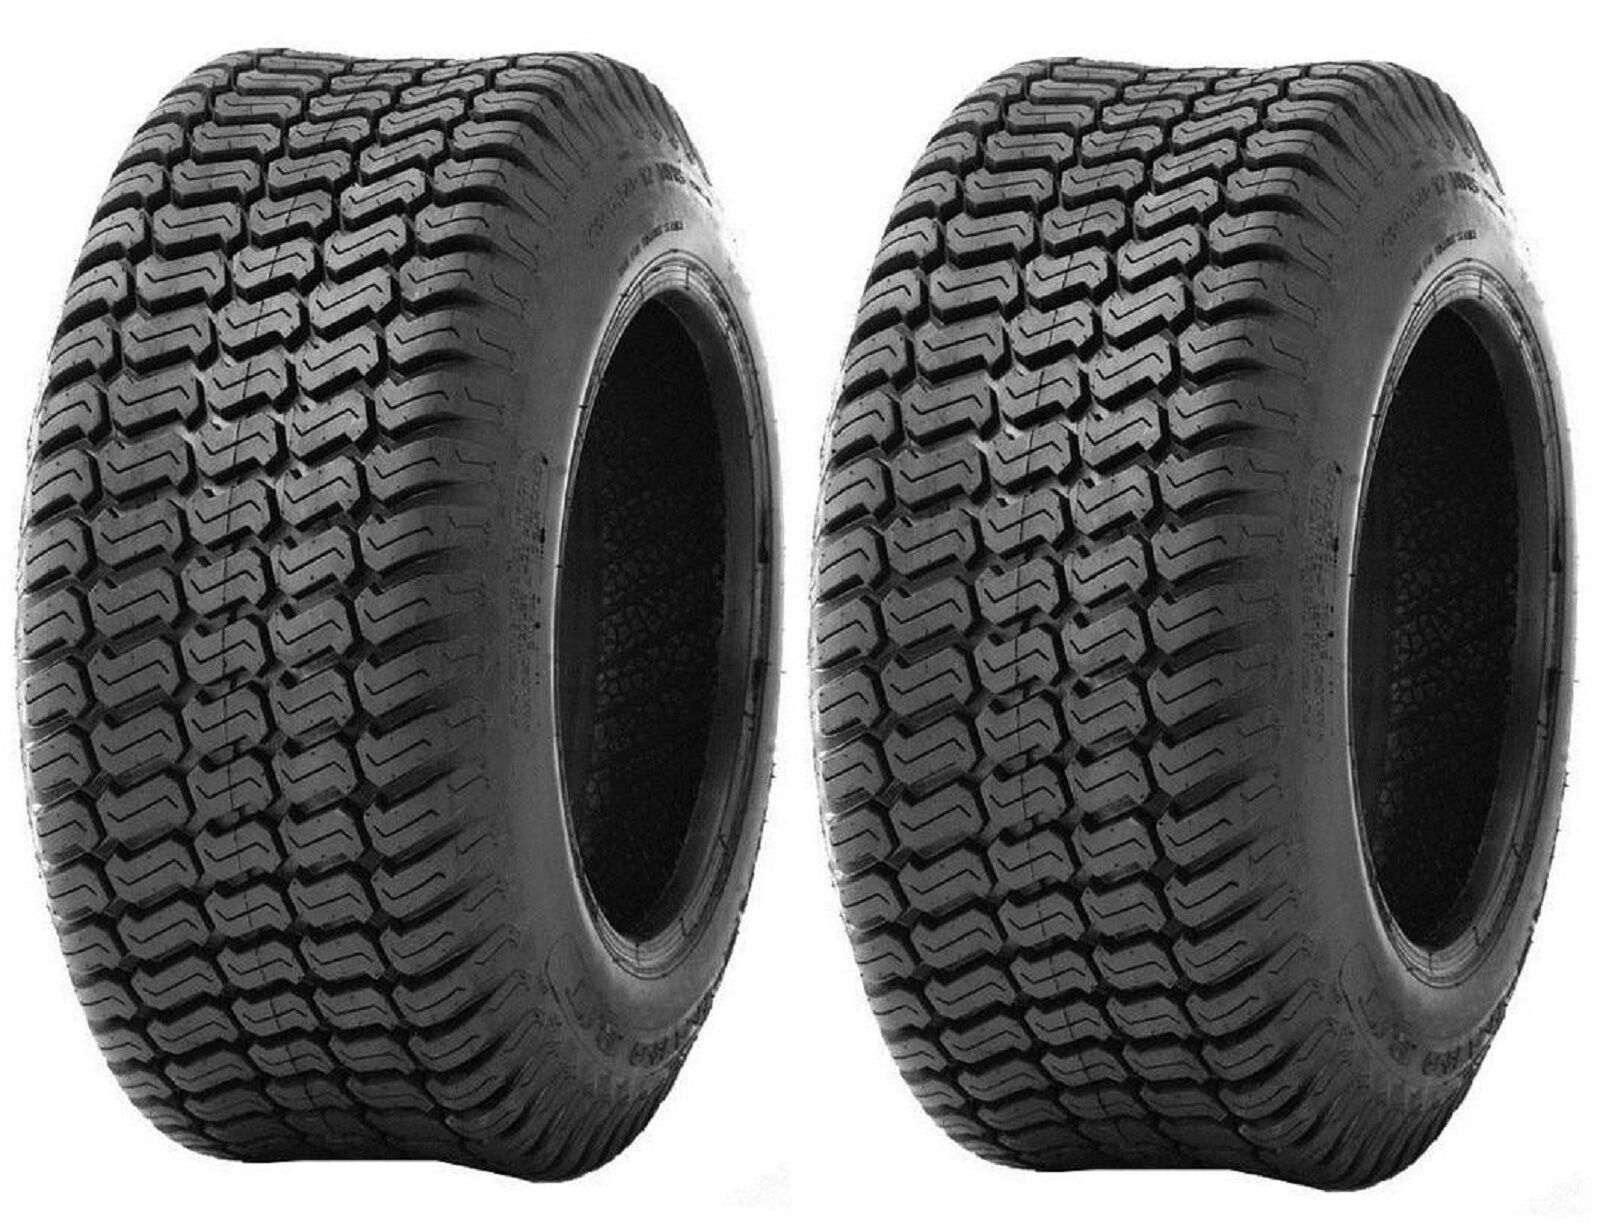 Set of 2 PROMASTER 16X6.50-8 505 tubeless 2 ply Carlisle 5114011